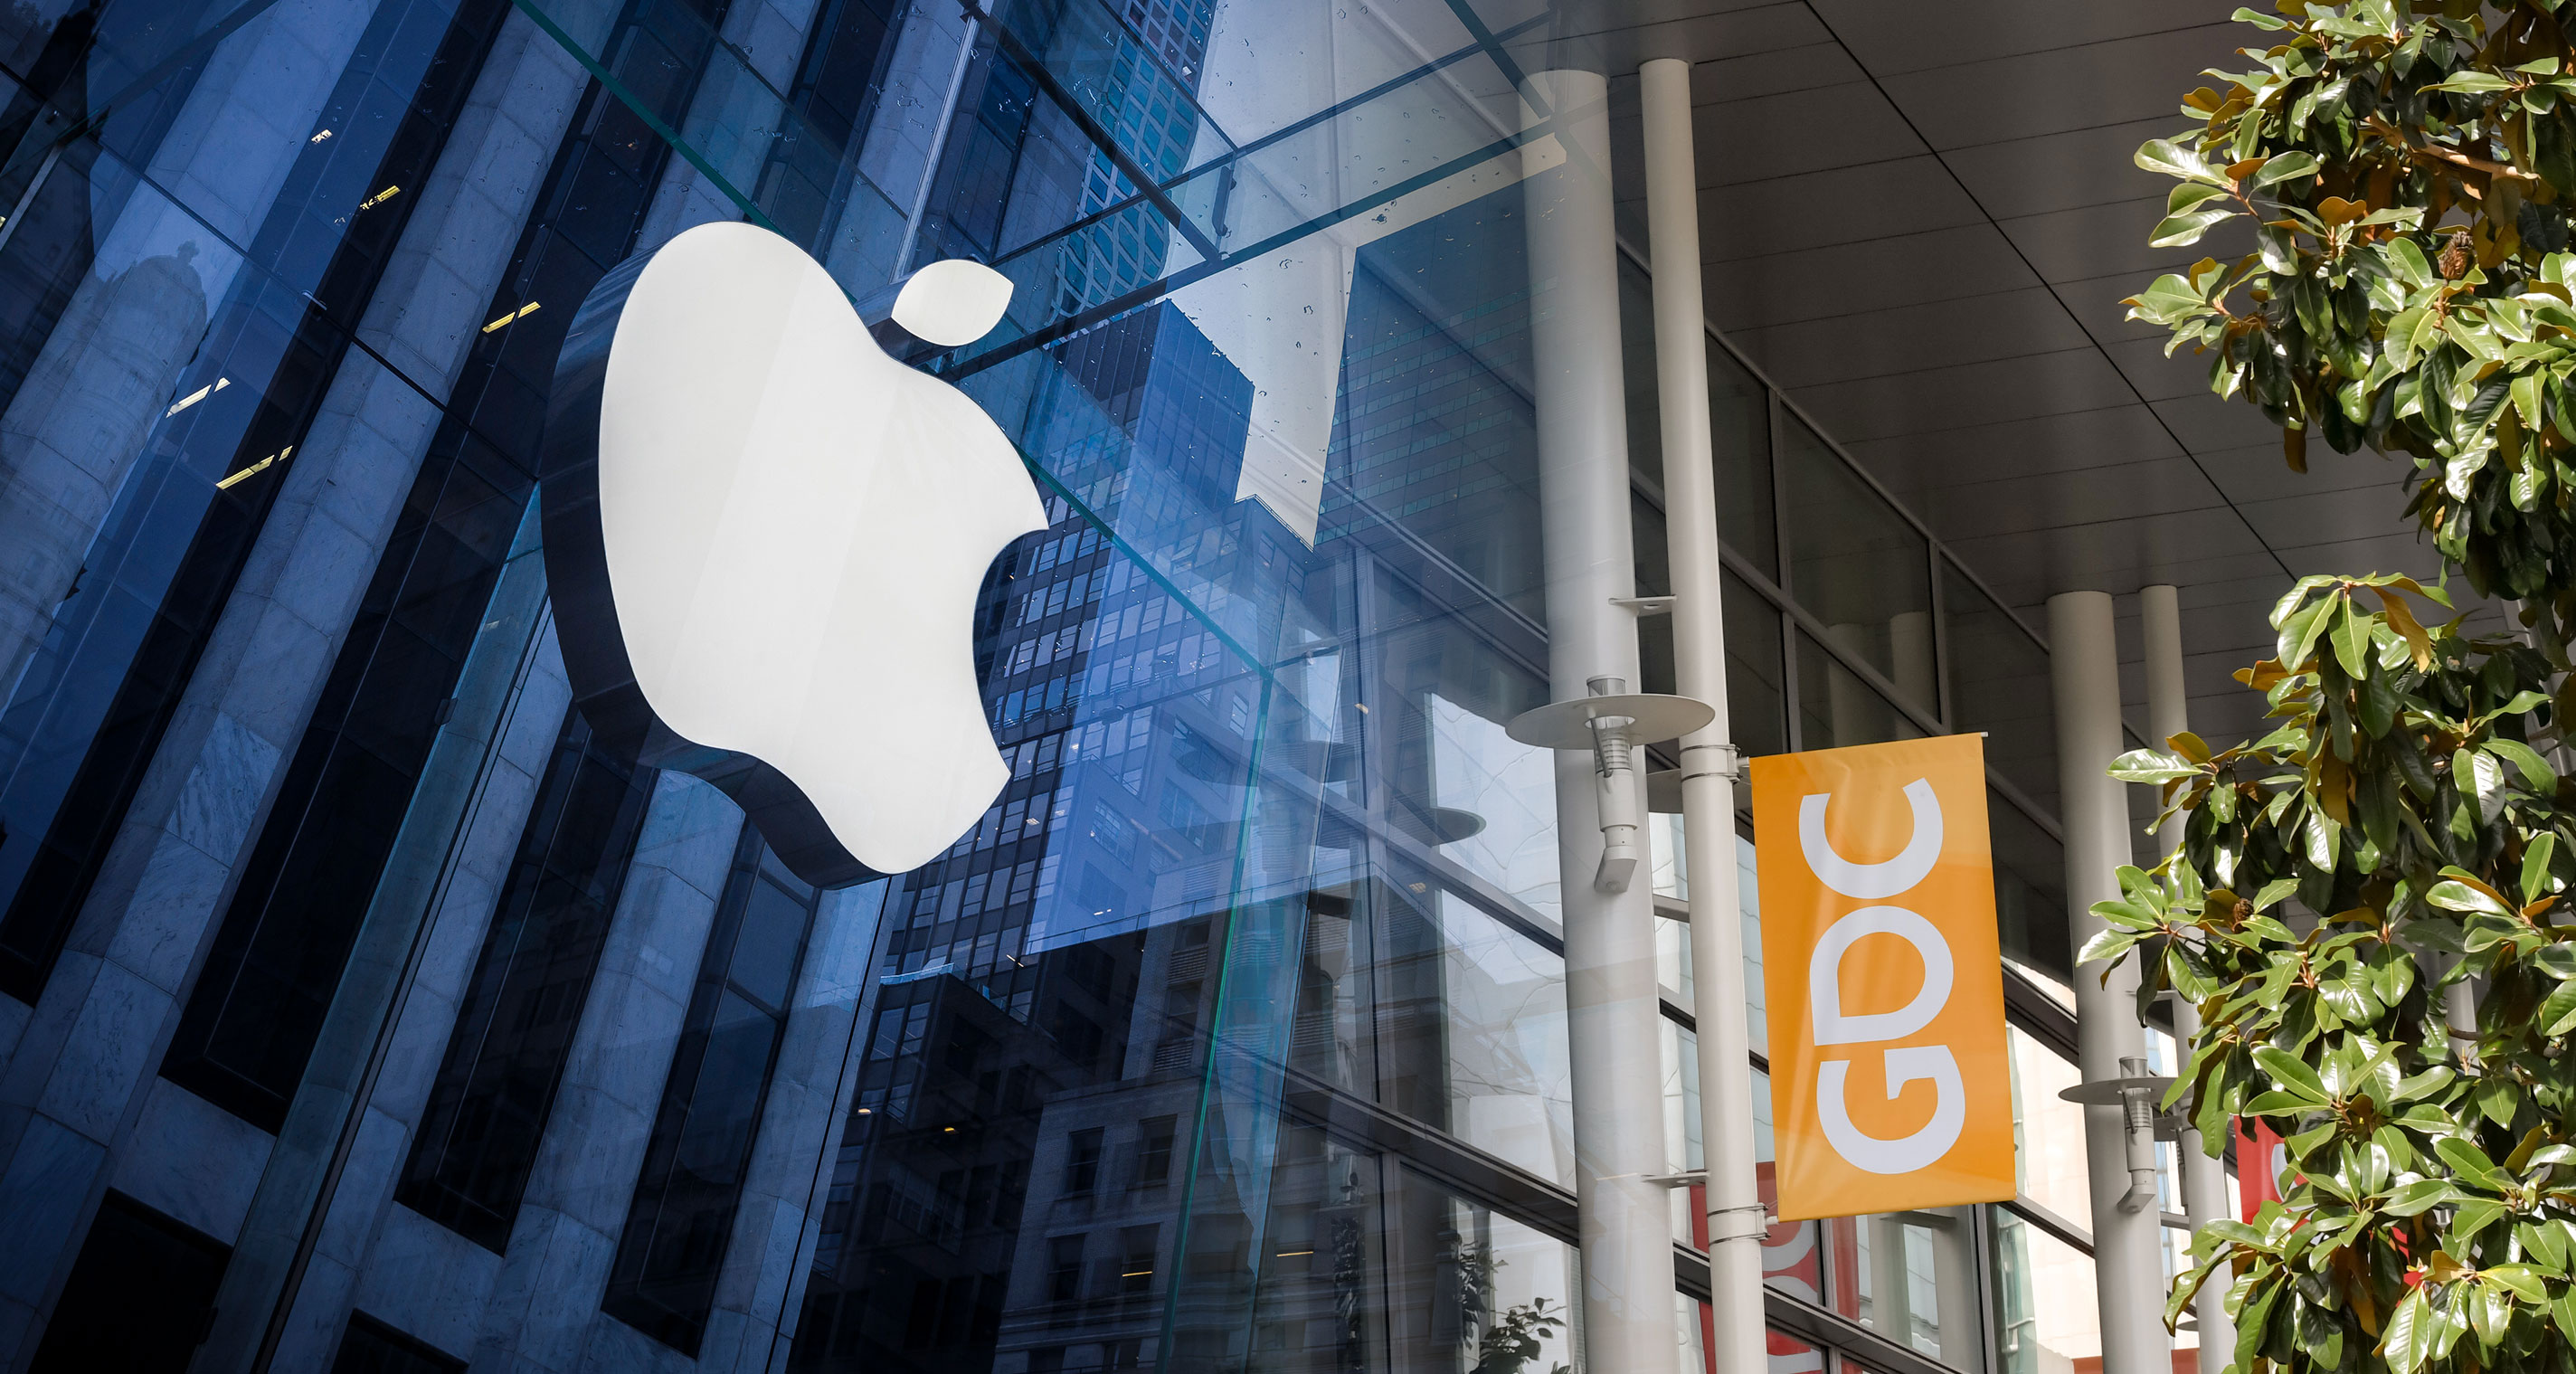 Apple reportedly looks to Virginia for another US campus		 		 	Jonathan Shieber         @	       	7 hours